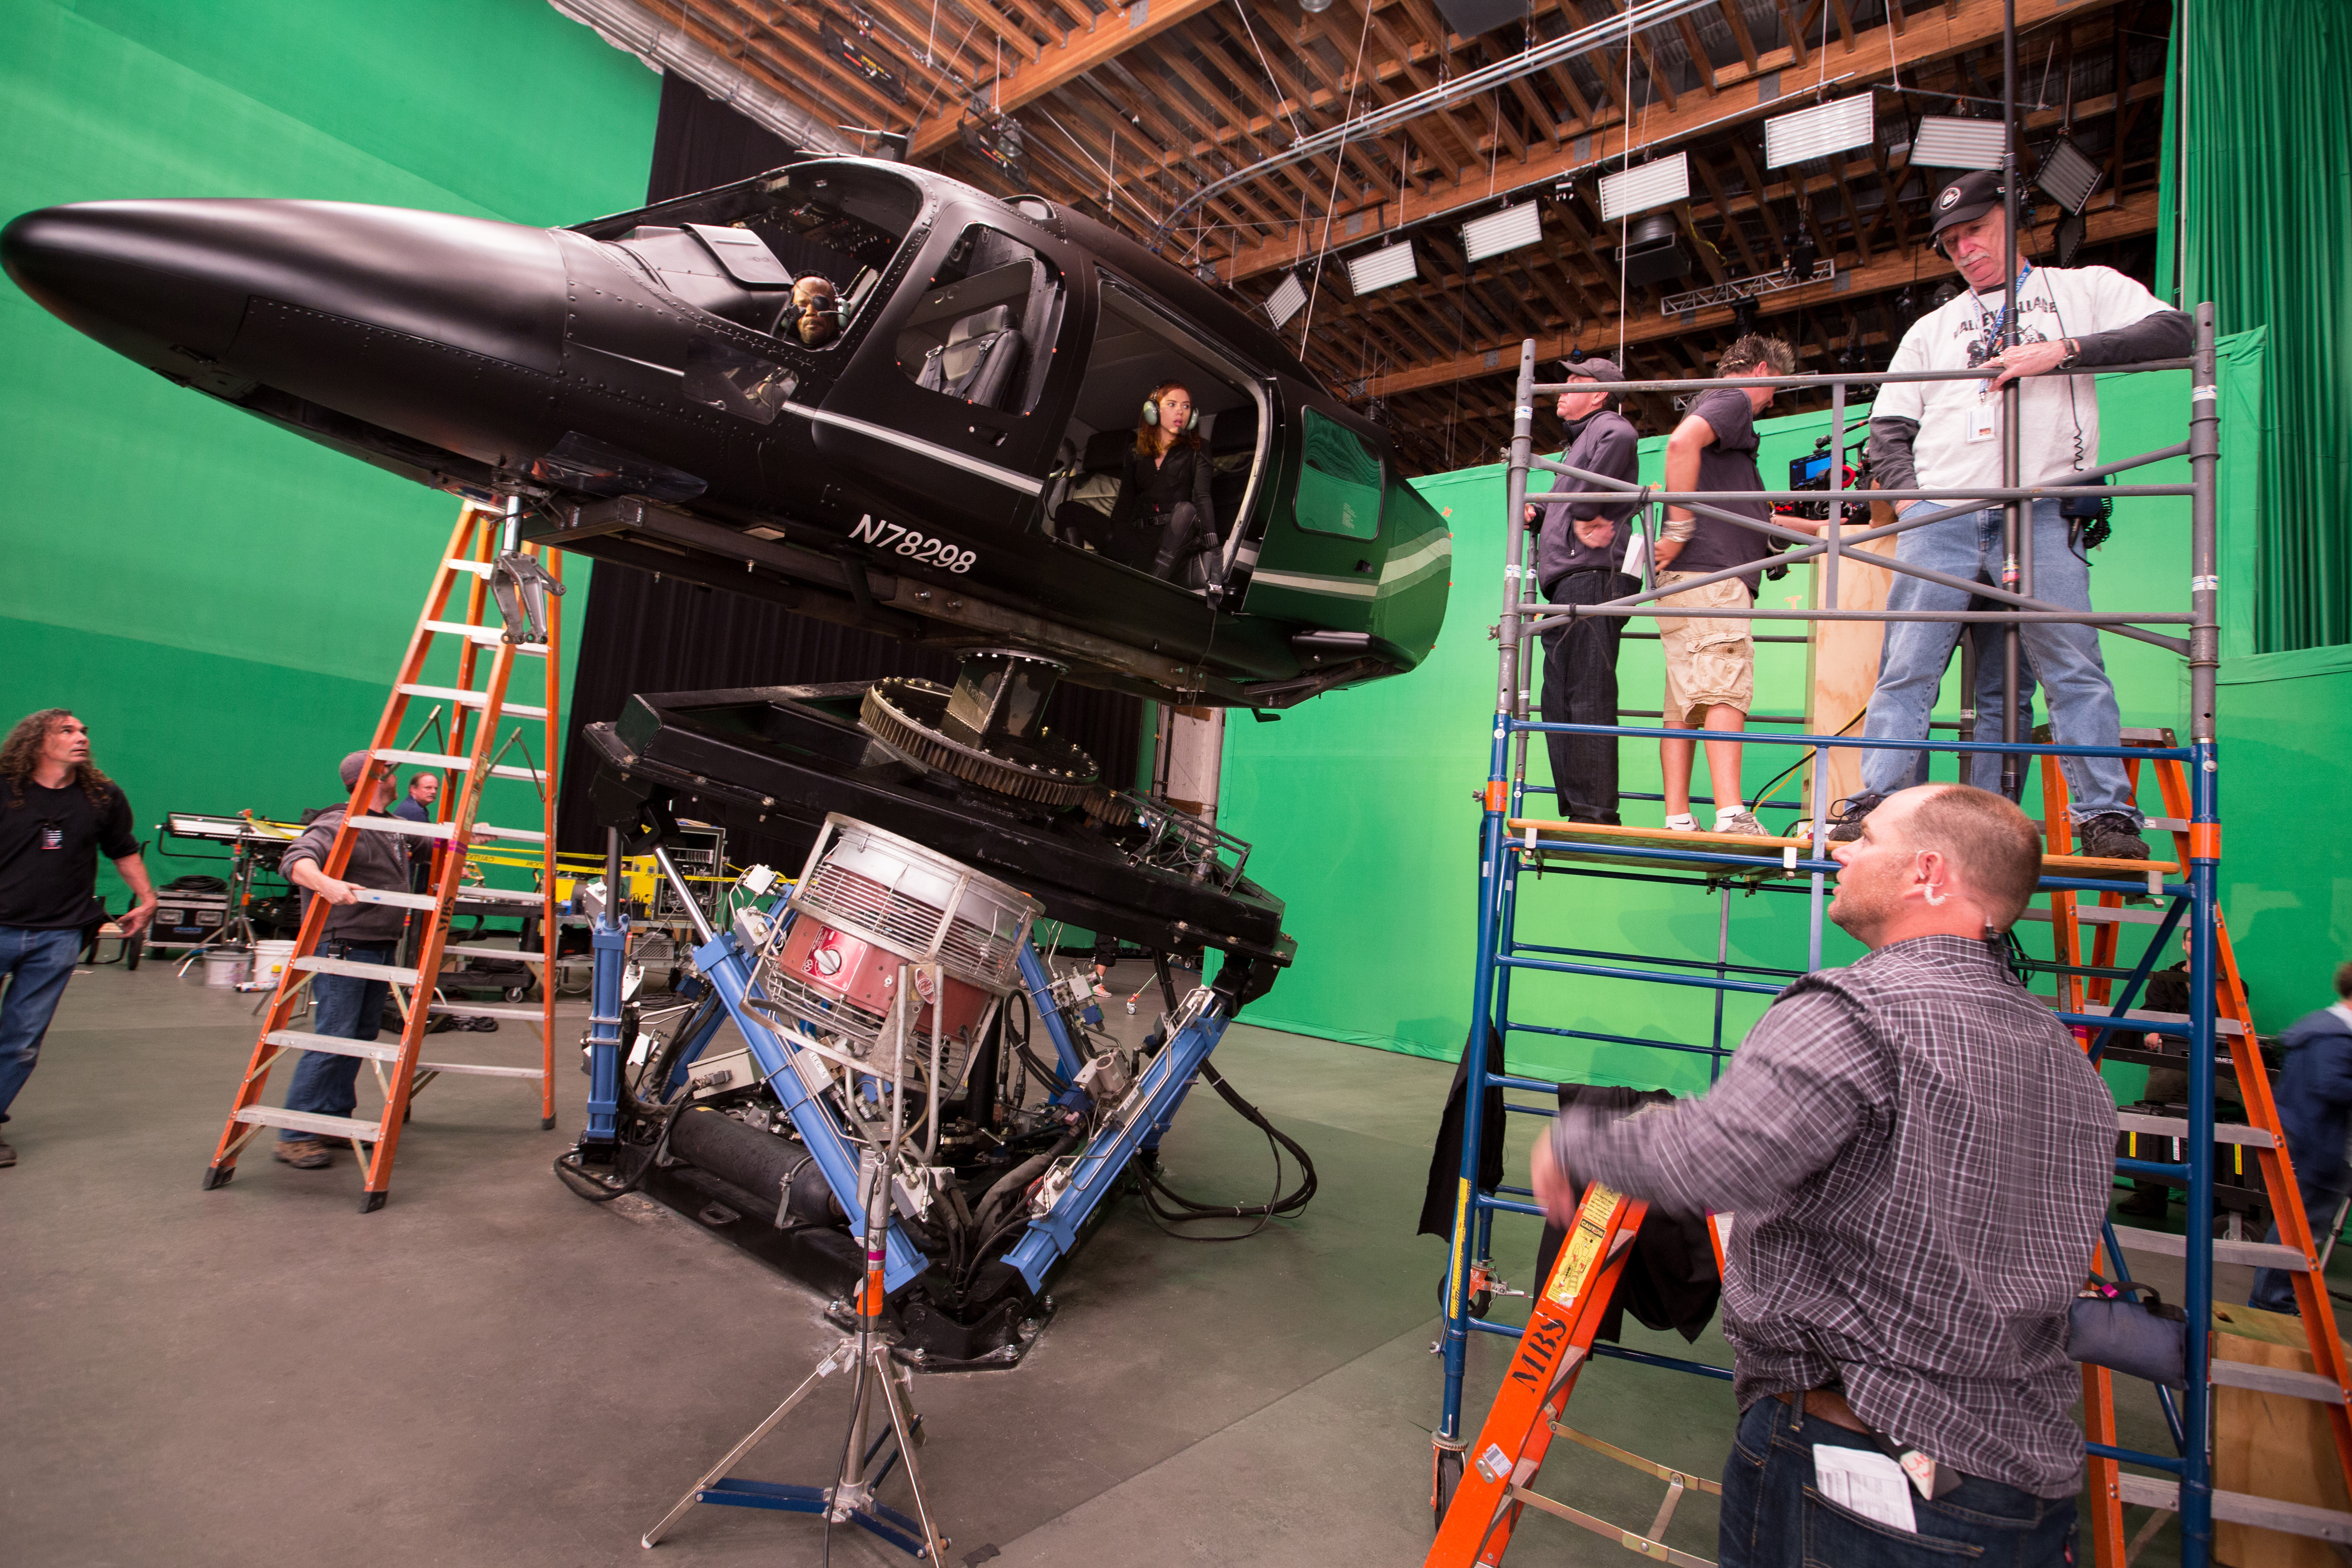 Samuel L. Jackson as Nick Fury and Scarlett Johansson as Black Widow fly a mock helicopter in front of a green screen.